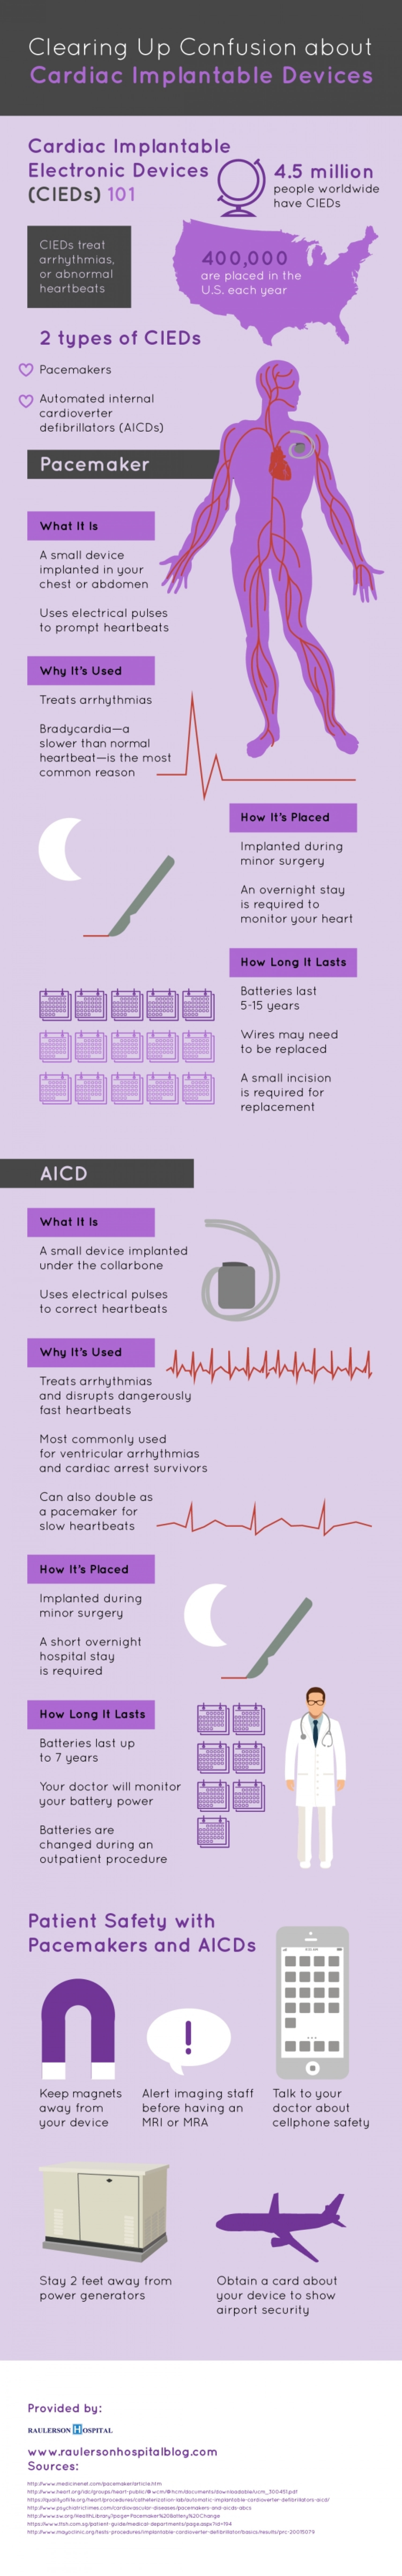 Clearing Up Confusion about Cardiac Implantable Devices Infographic